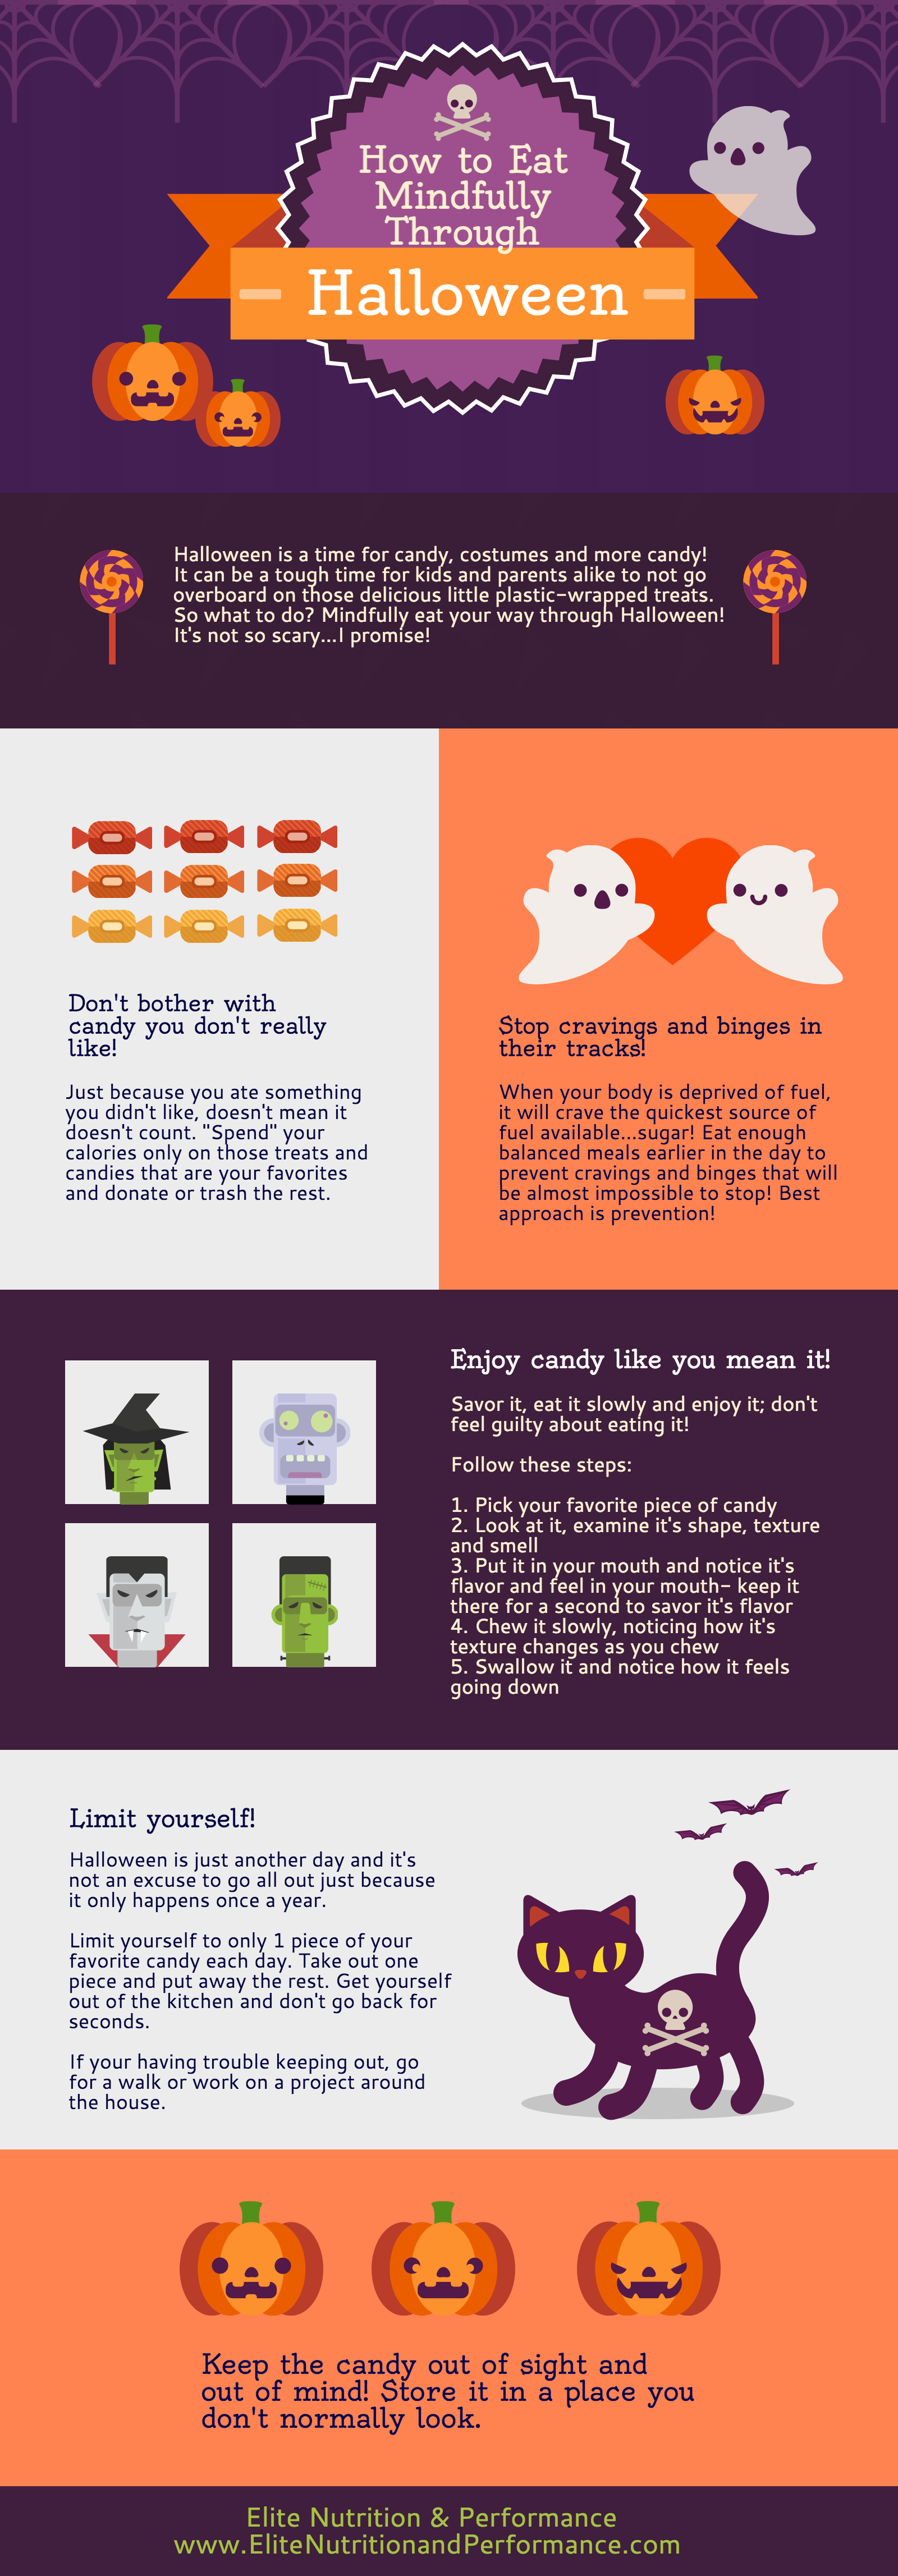 How to Mindfully Eat Halloween Candy